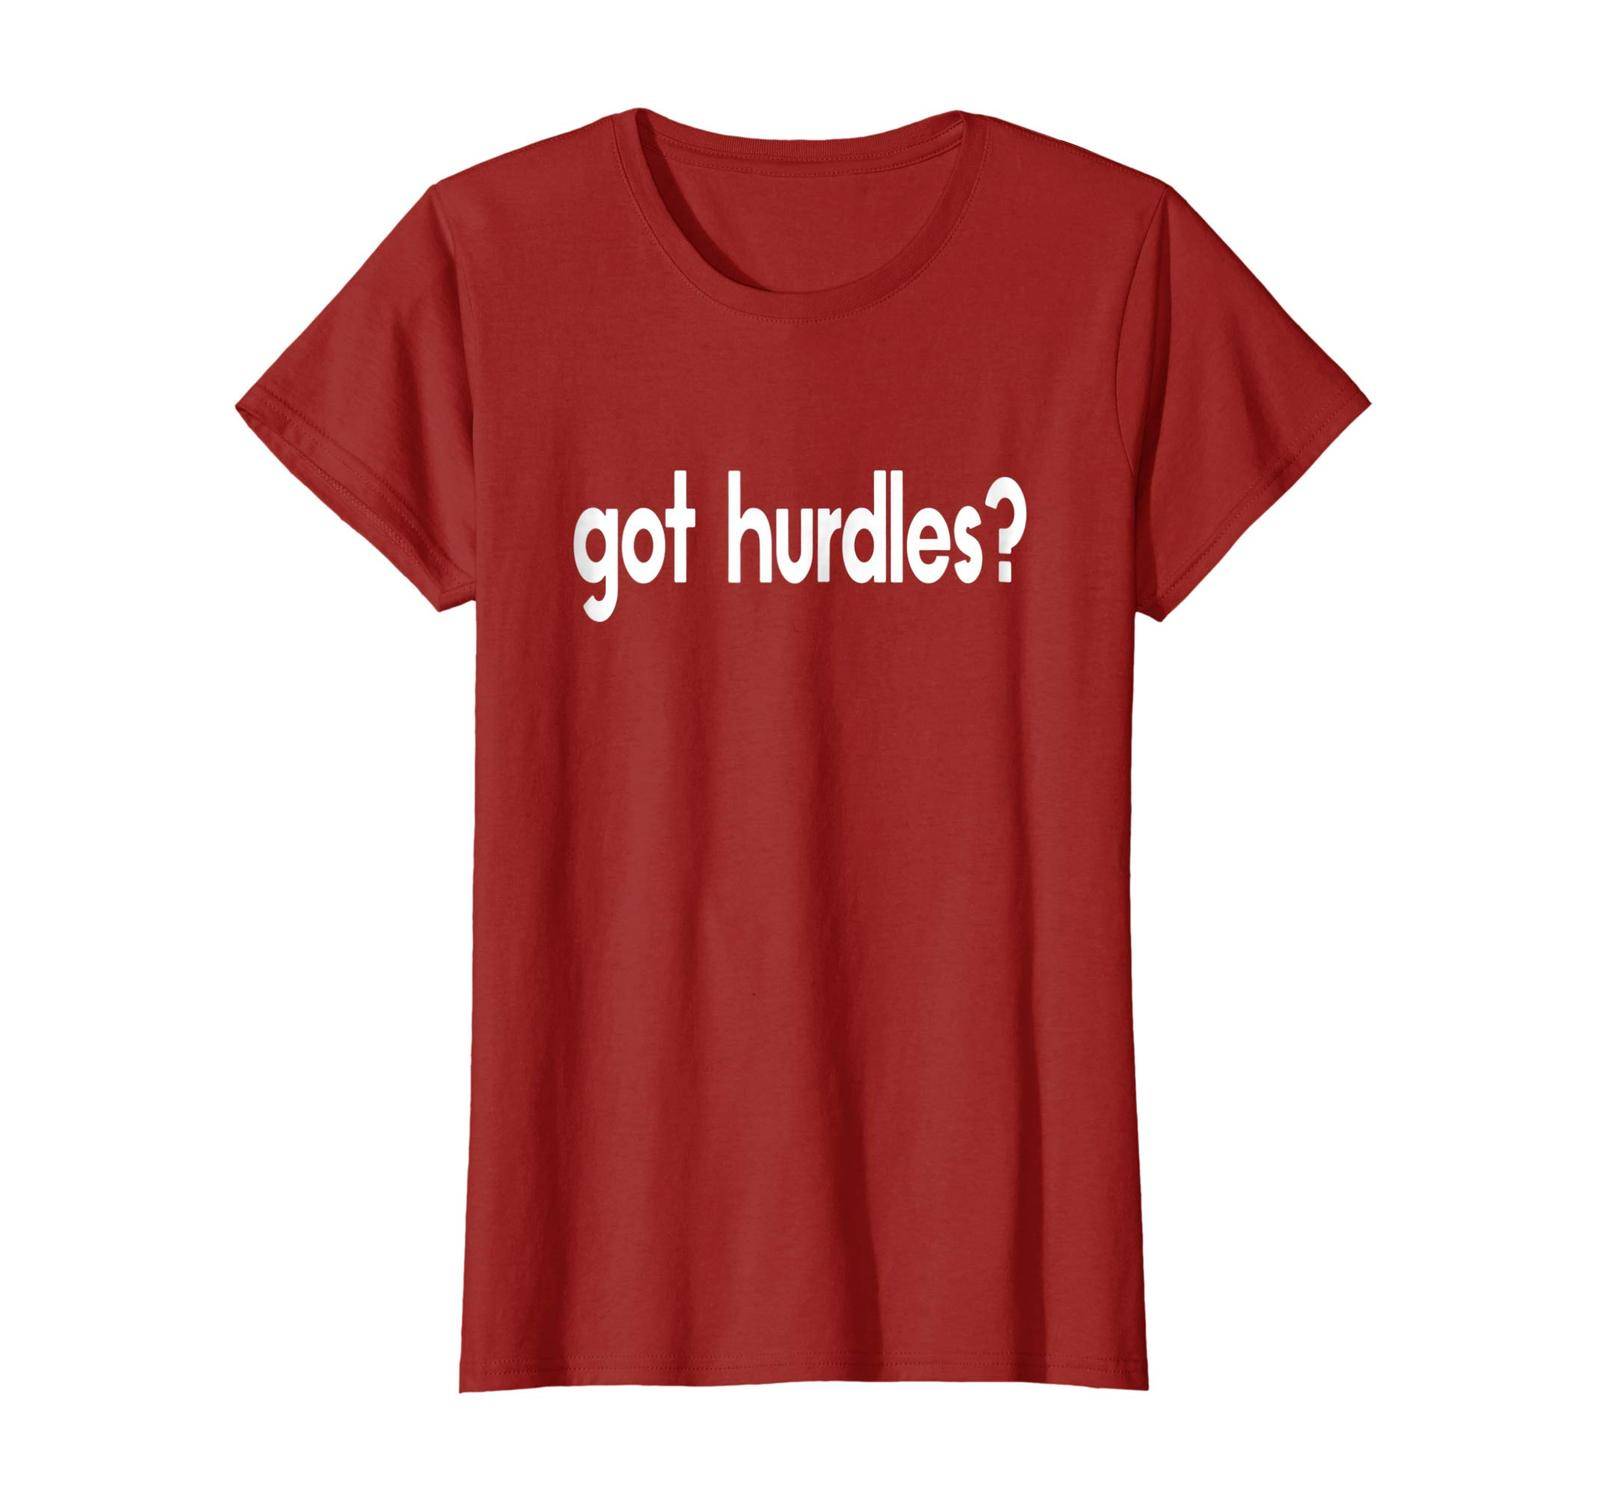 Primary image for New Shirts - Got Hurdles Funny Run Runner Track Running Jumping T-shirt Wowen